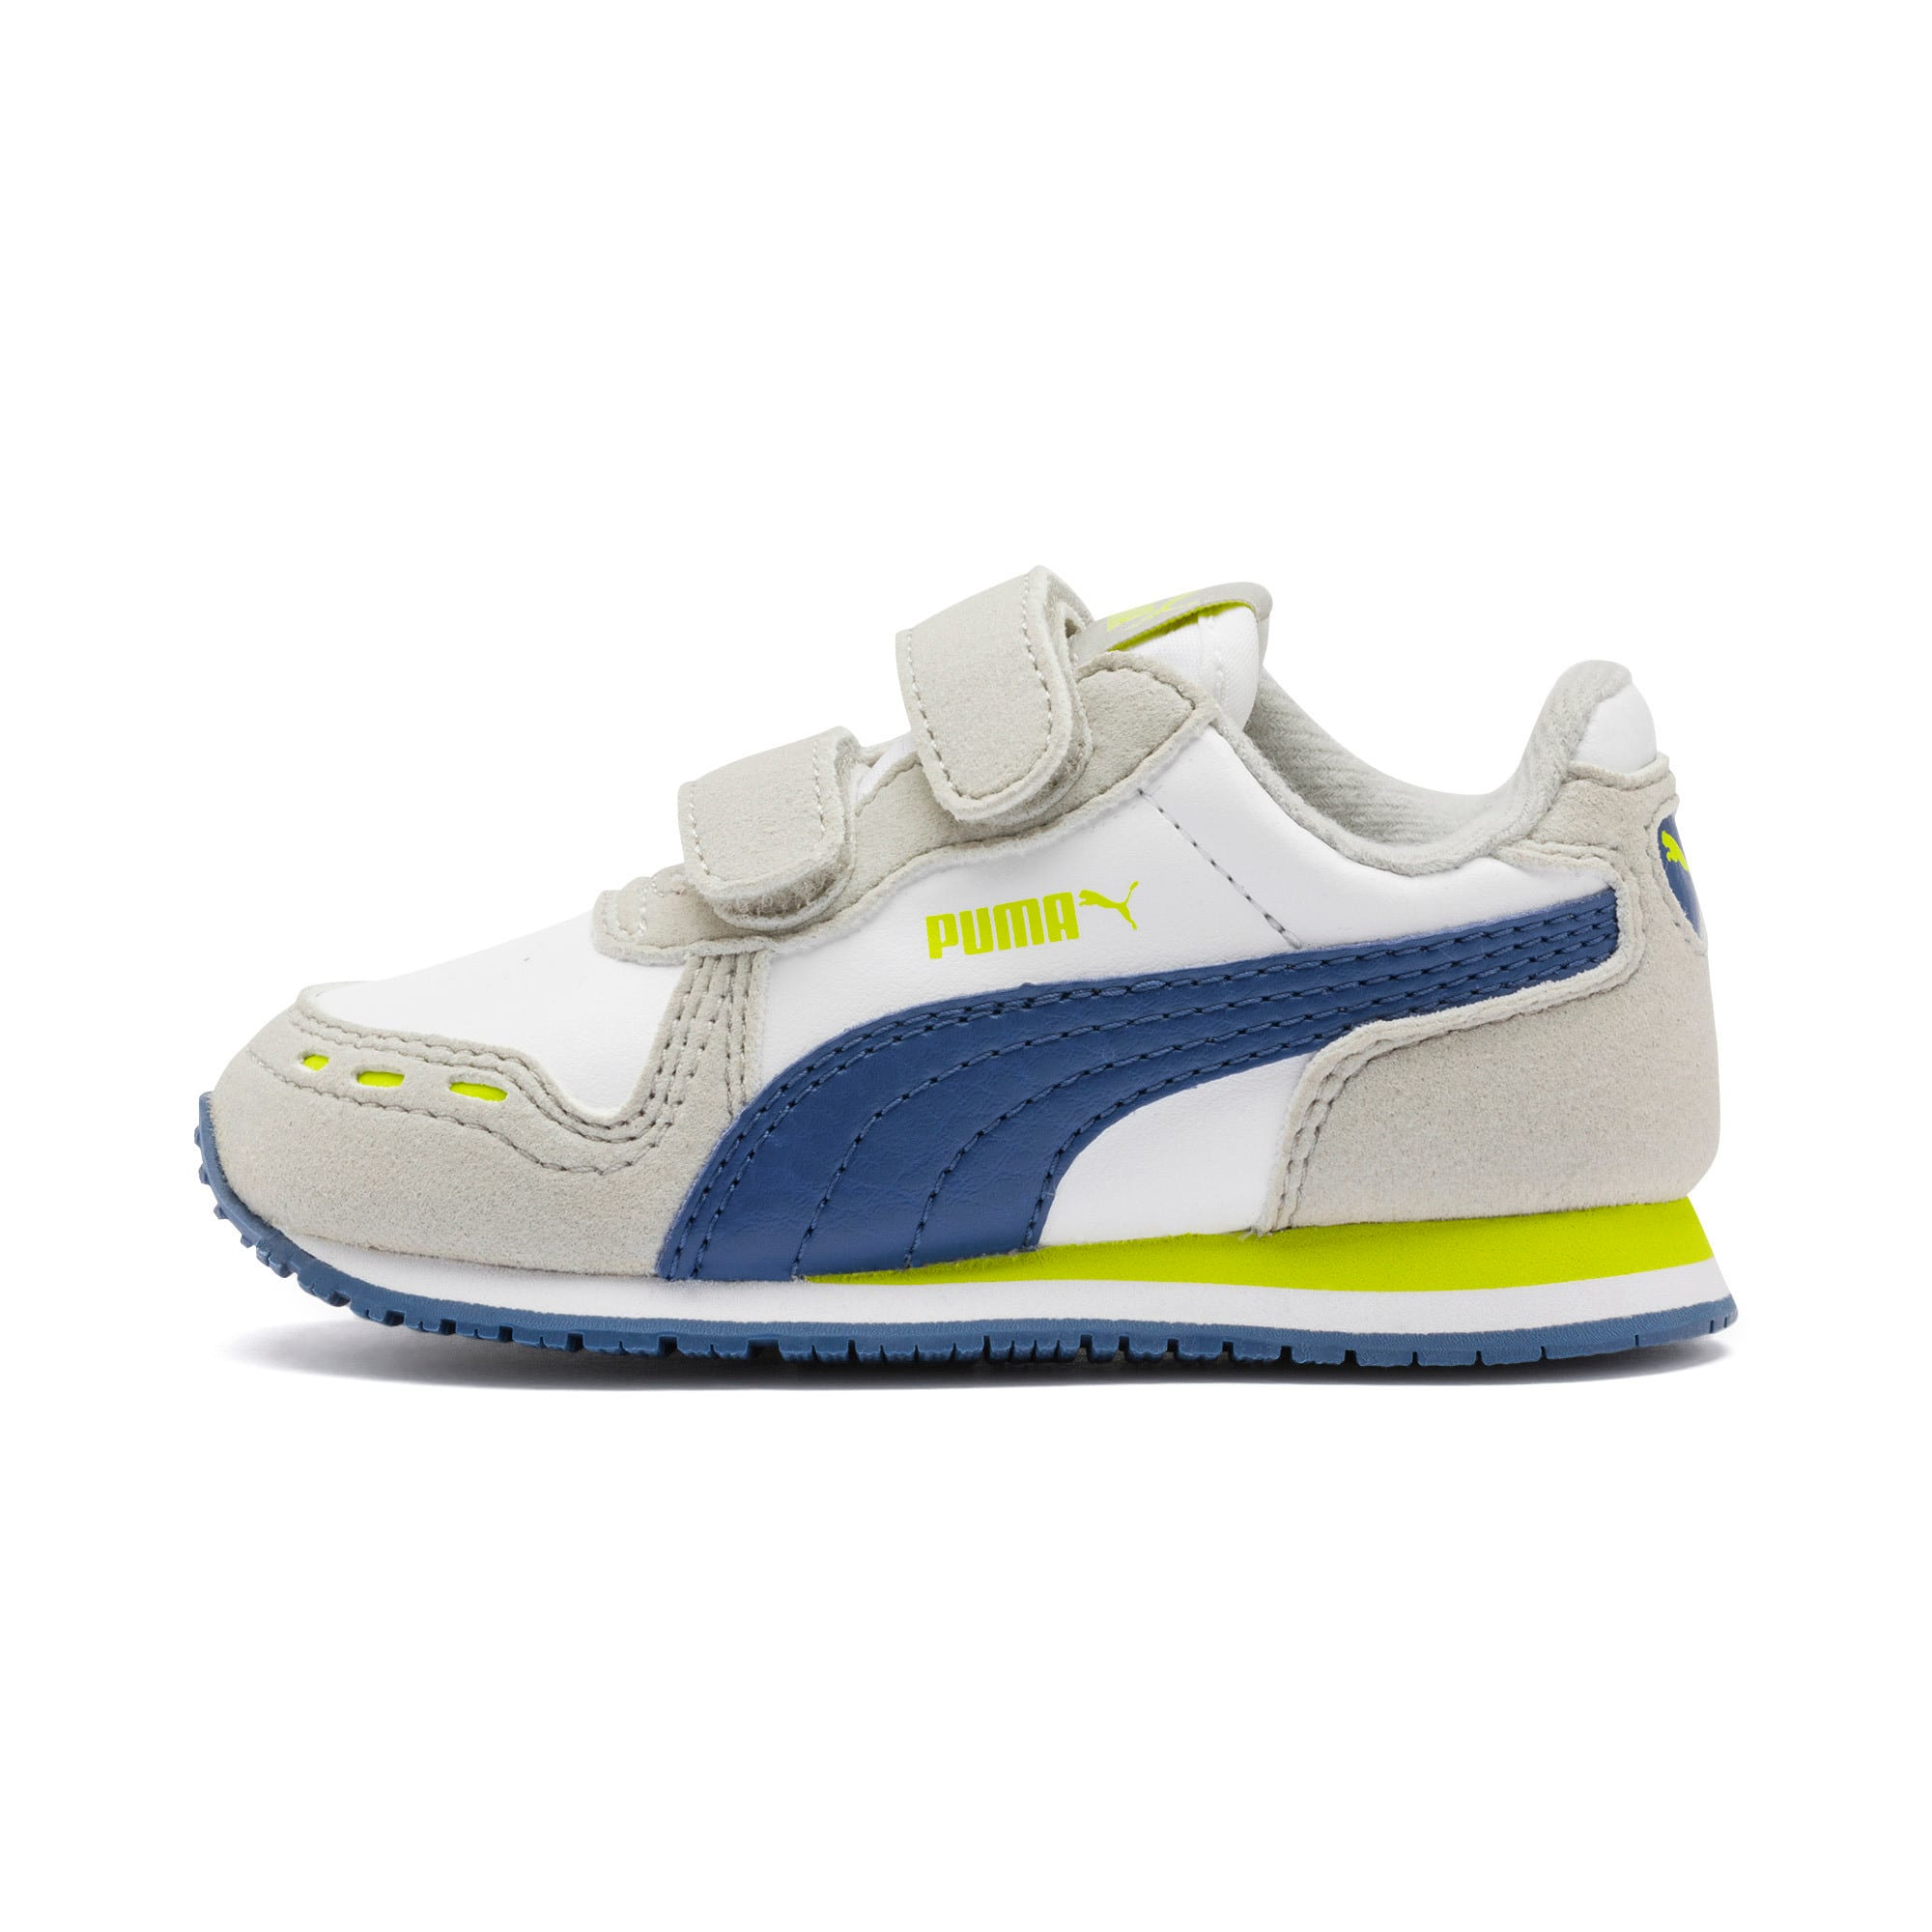 Thumbnail 1 of Cabana Racer SL Toddler Shoes, Puma White-Galaxy Blue, medium